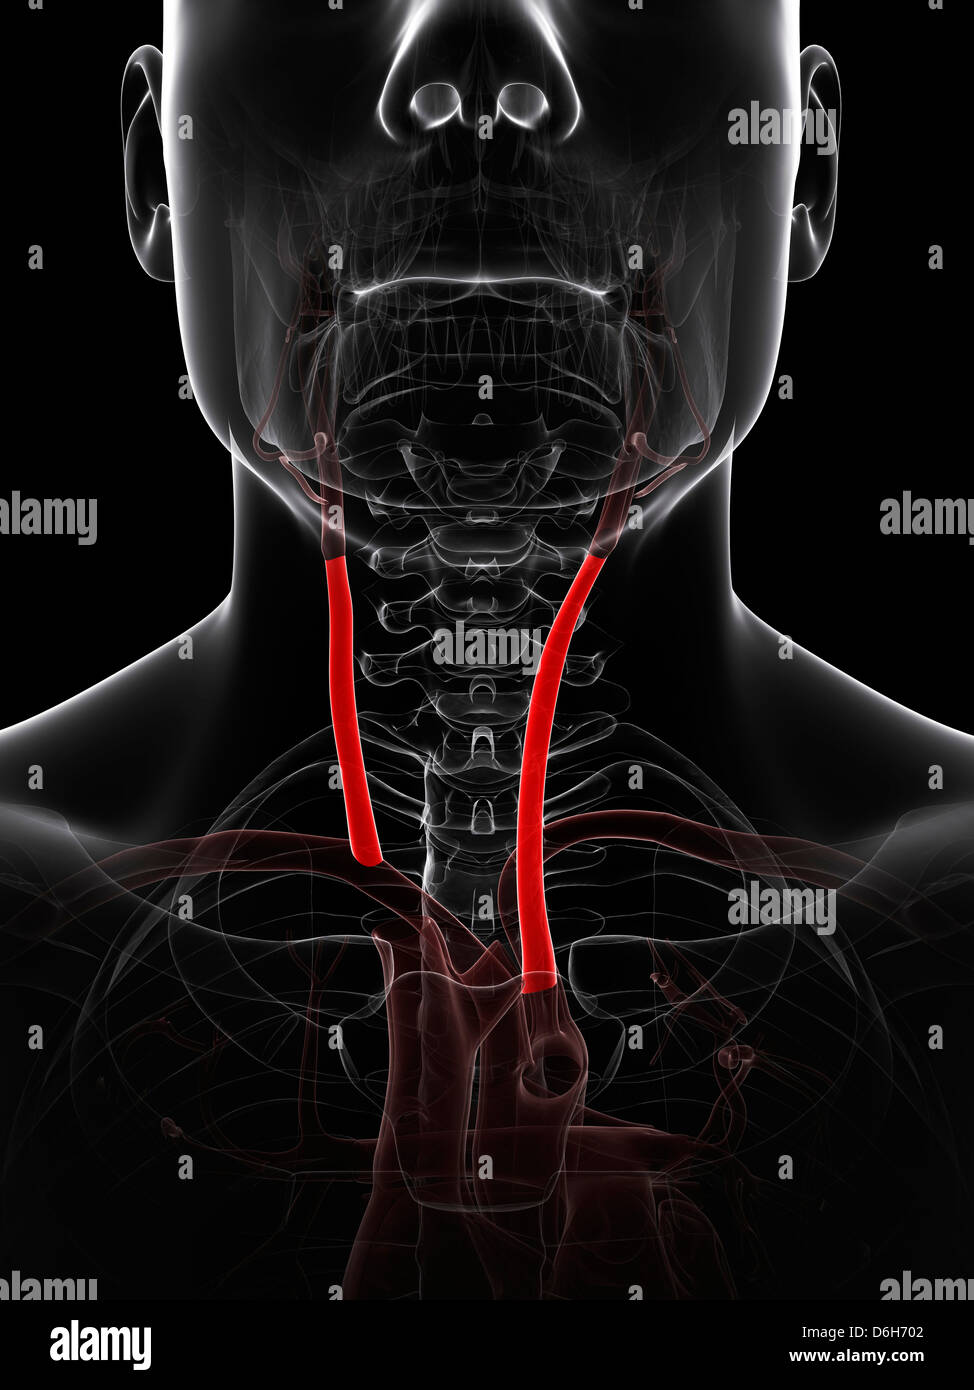 Hals-Arterien, artwork Stockfoto, Bild: 55697714 - Alamy